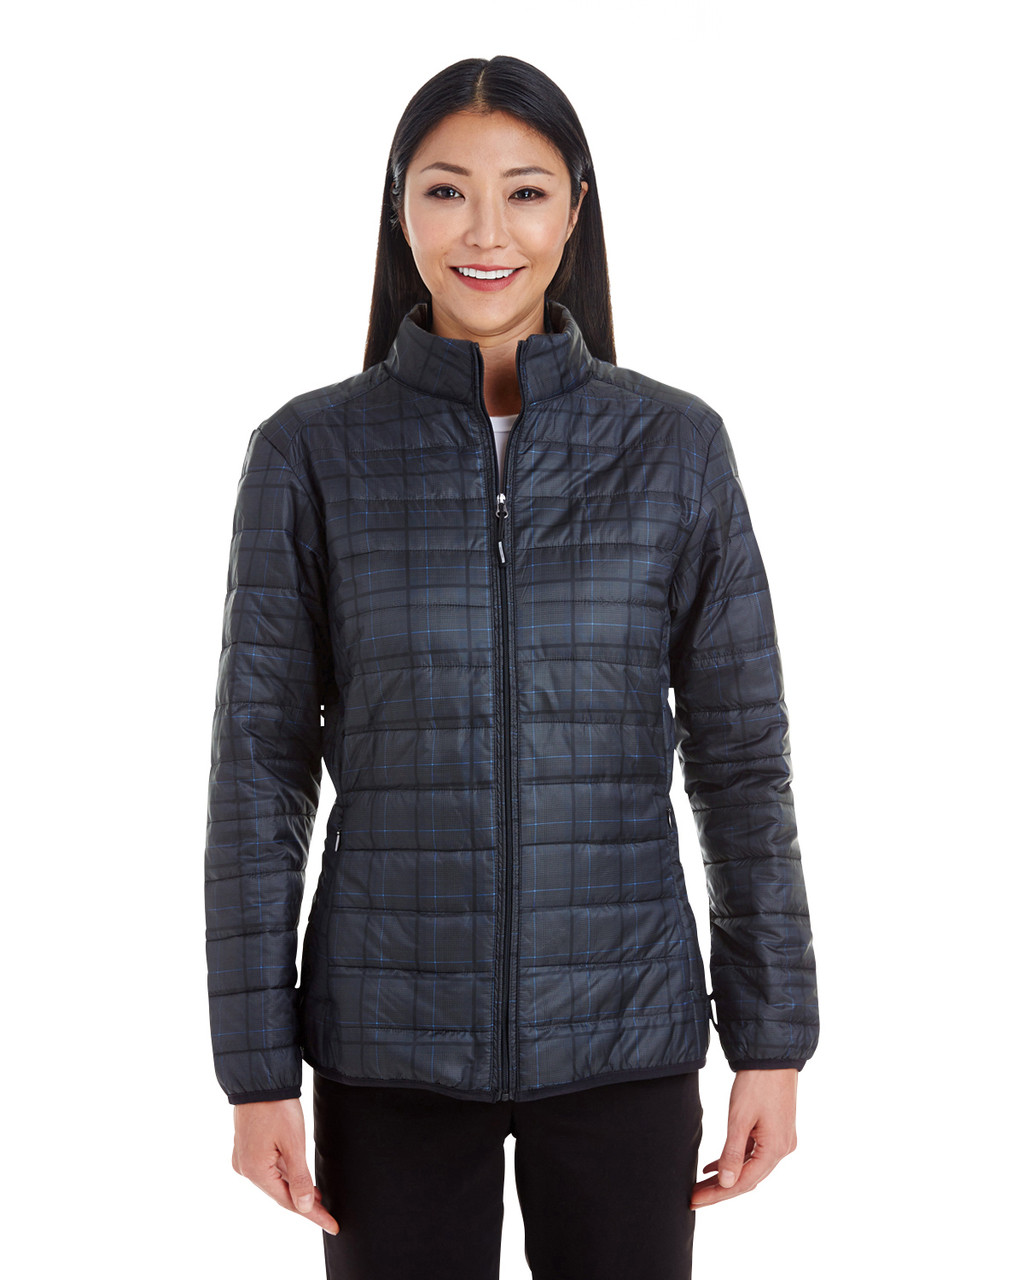 Plaid - FRONT - NE701W Ash City - North End Ladies' Portal Interactive Printed Packable Puffer Jacket | Blankclothing.ca